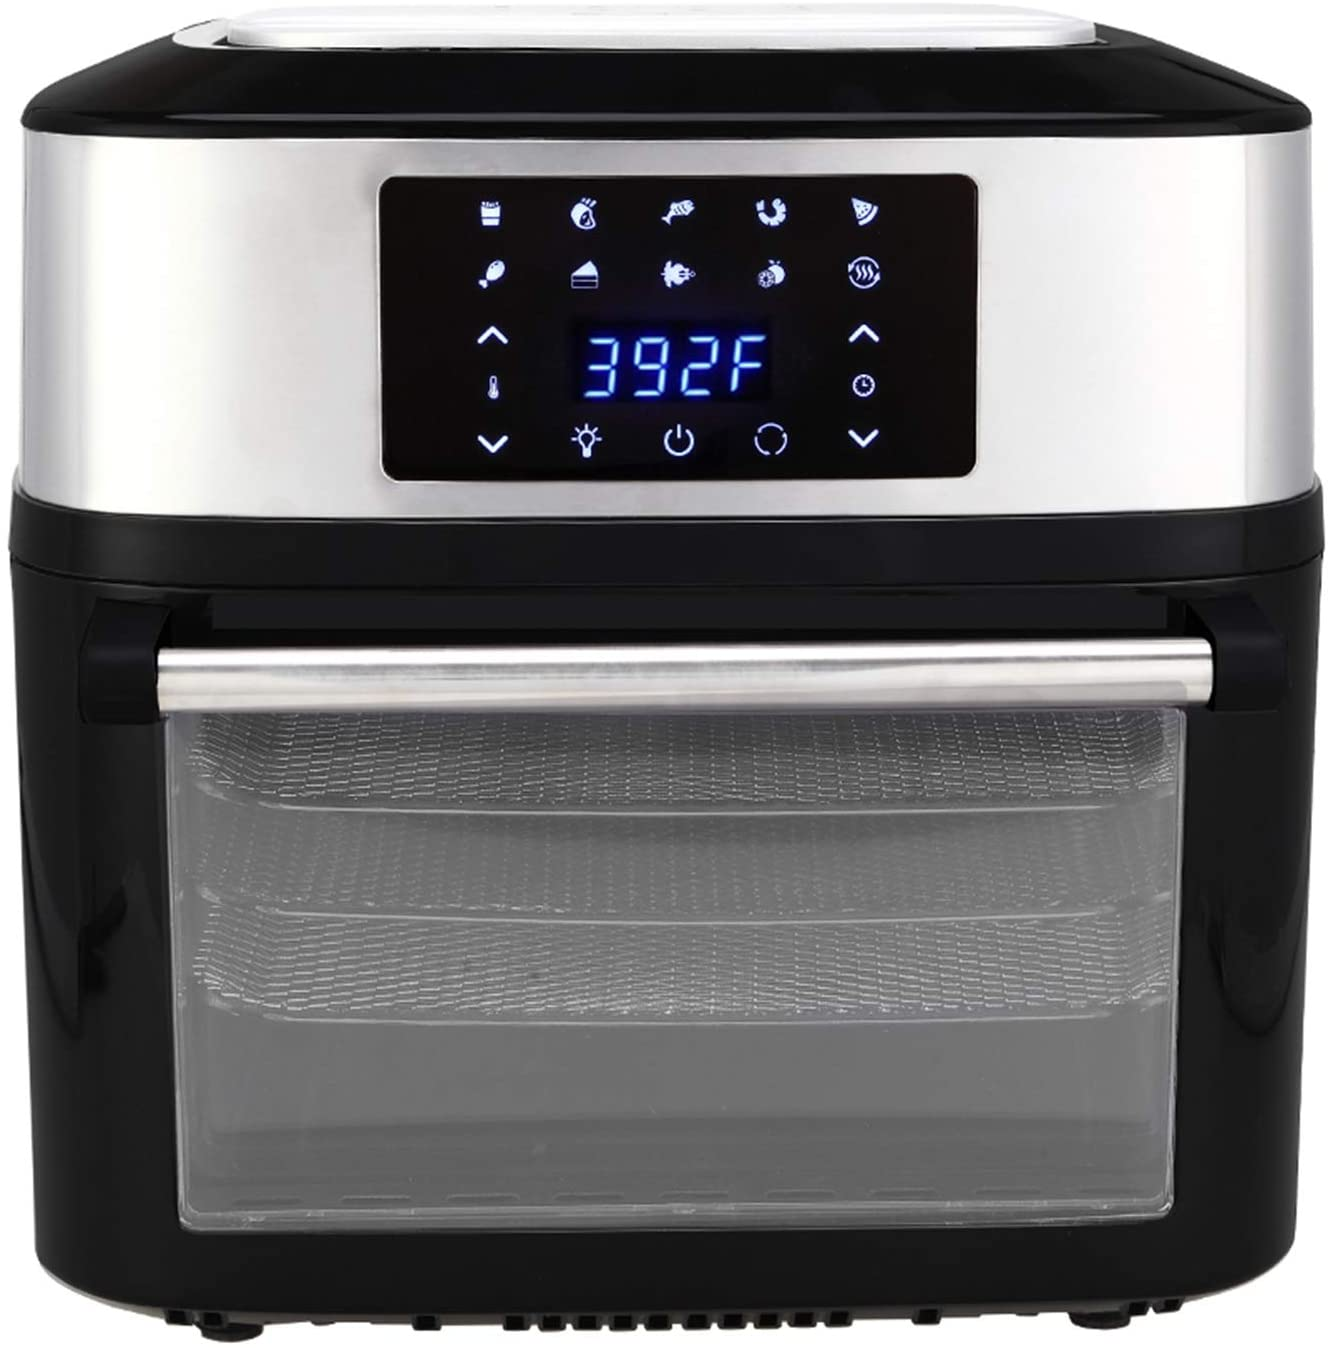 US 120V 16.91Quarts / 16L Air Fryer 1800W Black Modern Air Fryers for Air Frying, Roasting & Keep Warm, Electric Hot Oven Oilless Cooker